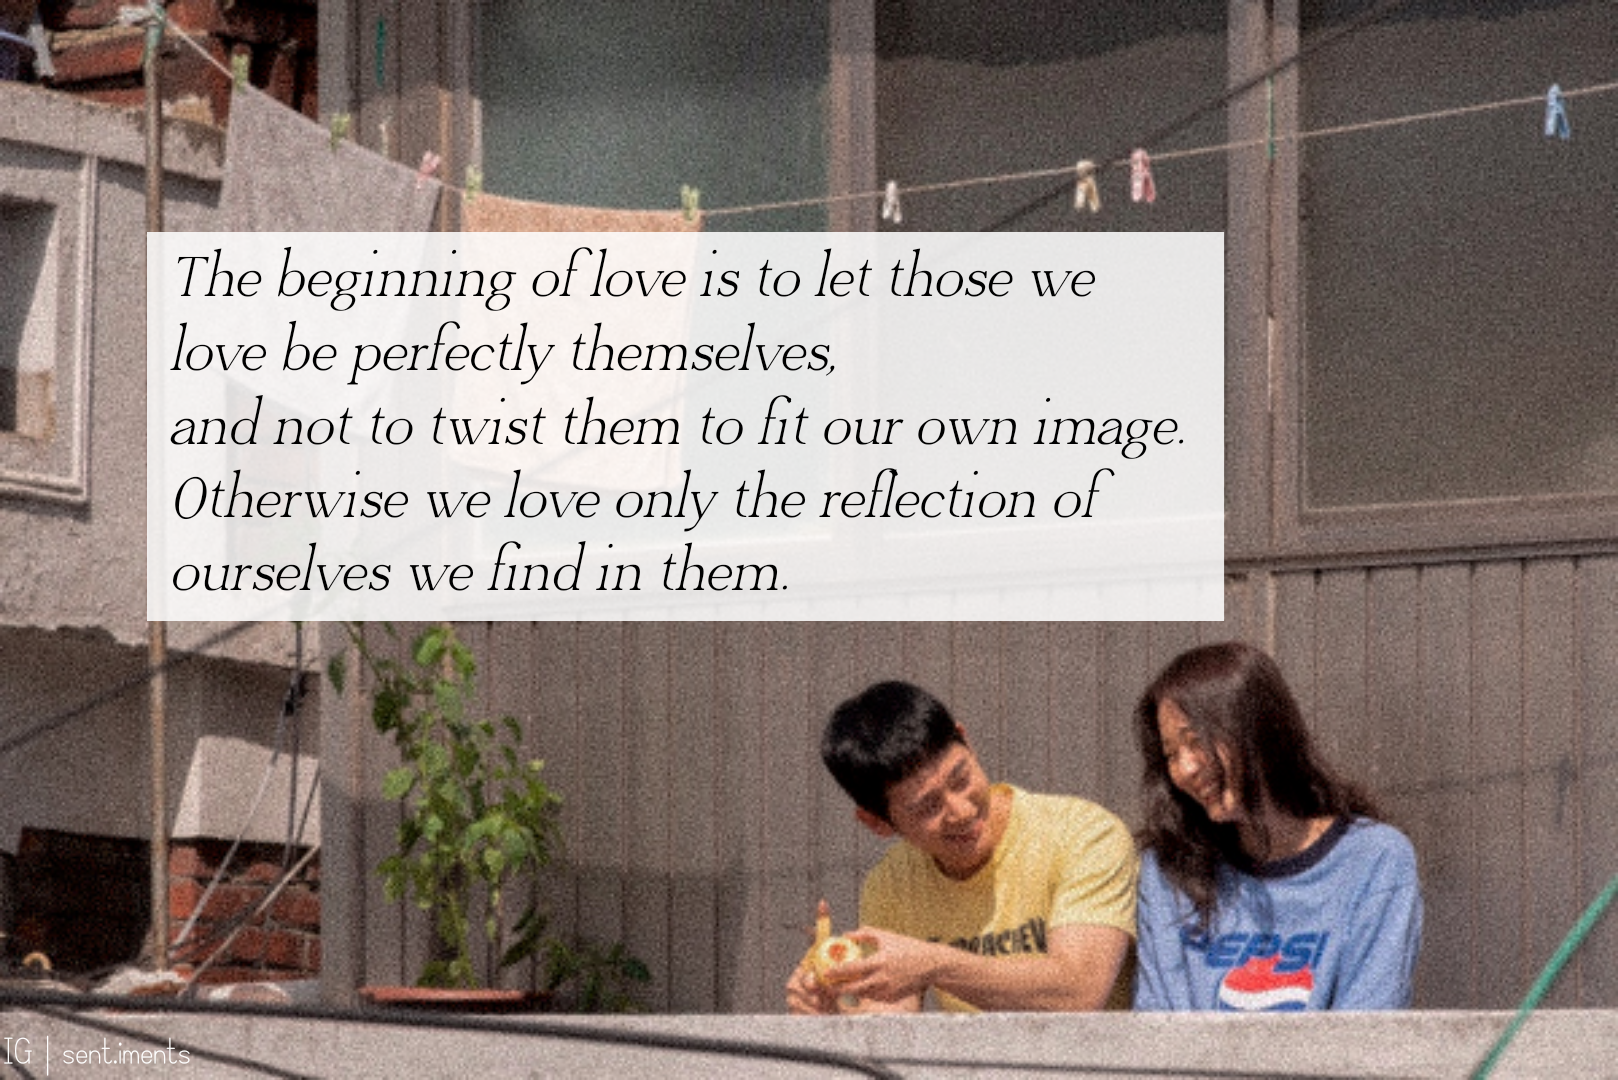 """The beginning of love is to let those we love be perfectly themselves, and not to twist them to fit our own image. Otherwise we love only the reflection of ourselves we find in them."" by Thomas Merton [601X 401]"